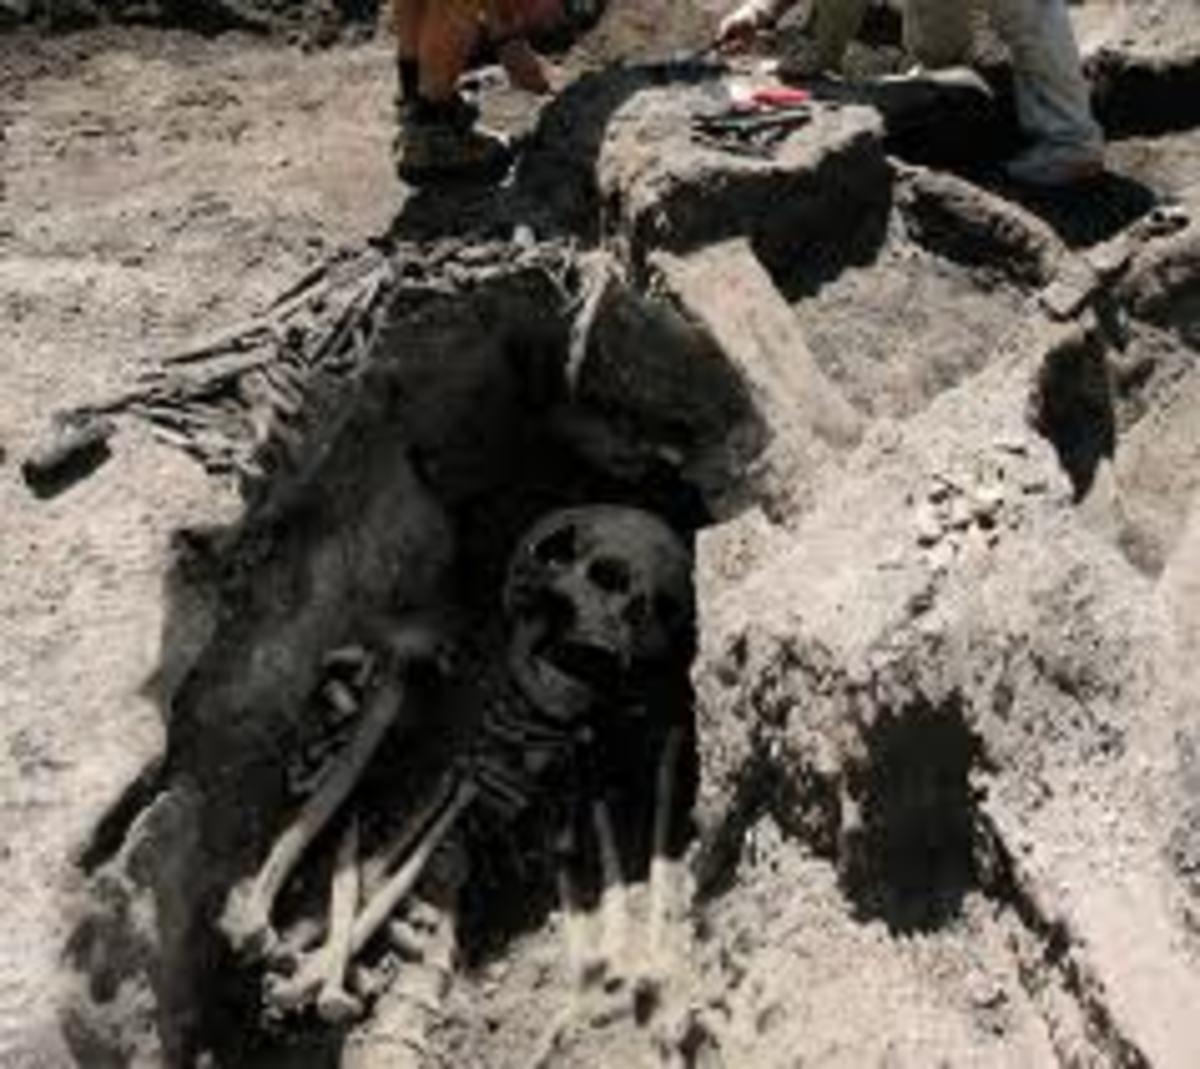 Giants were found all over the earth. Giants were the offspring of fallen angels and human women and are also known as the Nephilim.